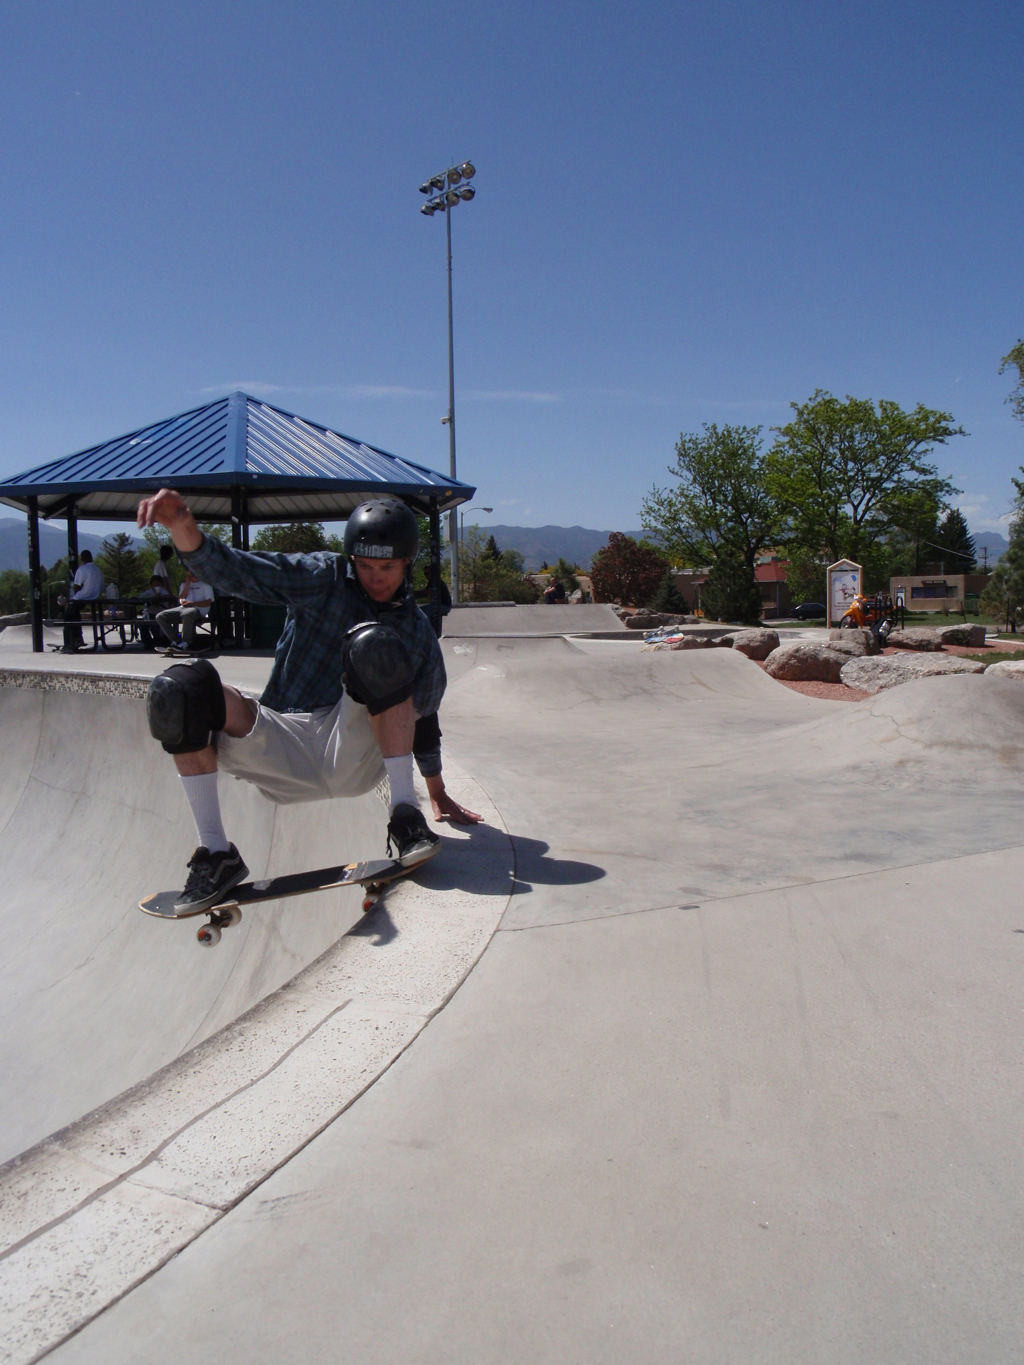 Lance ripping at Memorial Skatepark in Colorado Springs